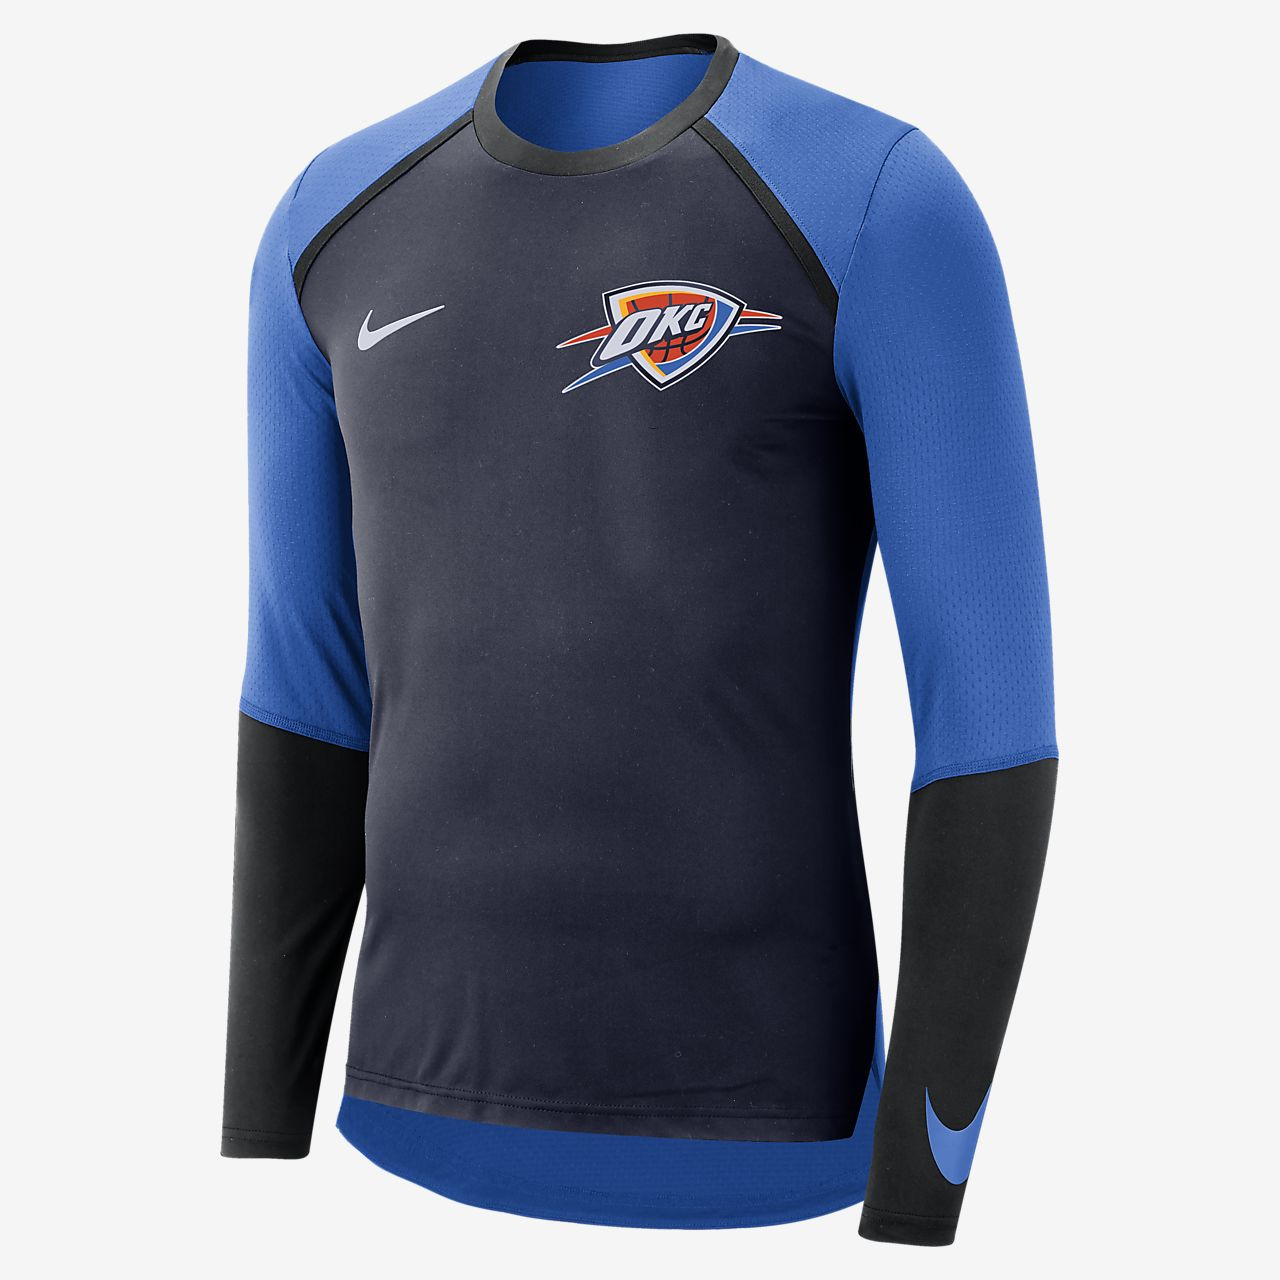 Oklahoma City Thunder Nike Dri-FIT Men s Long-Sleeve NBA Top. Nike.com 73c7a82bb